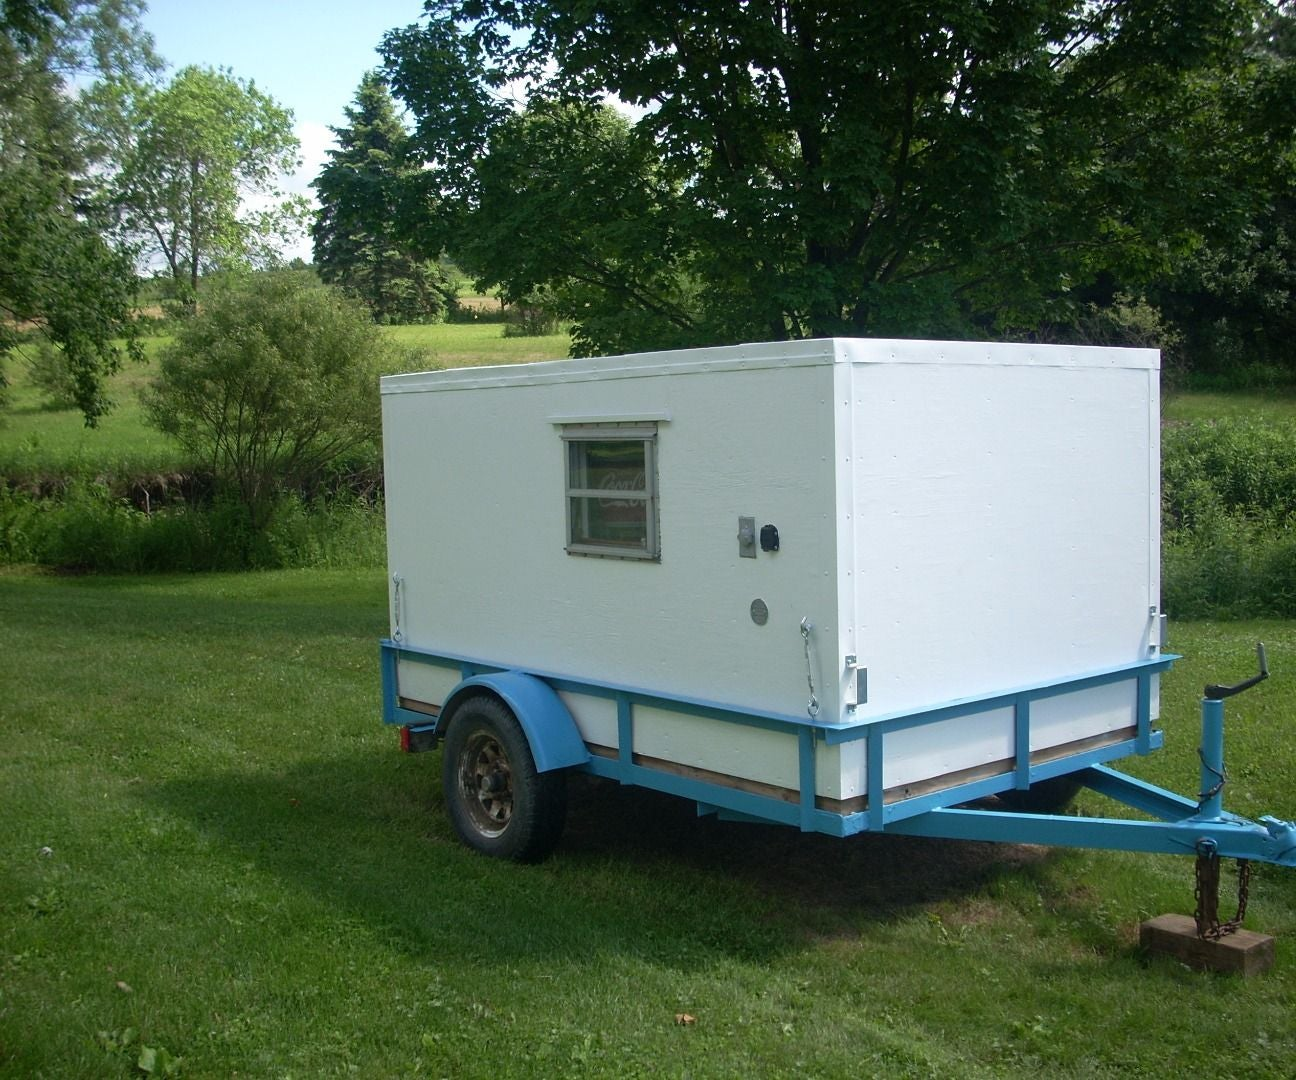 Diy Micro Camper 13 Steps With Pictures Instructables